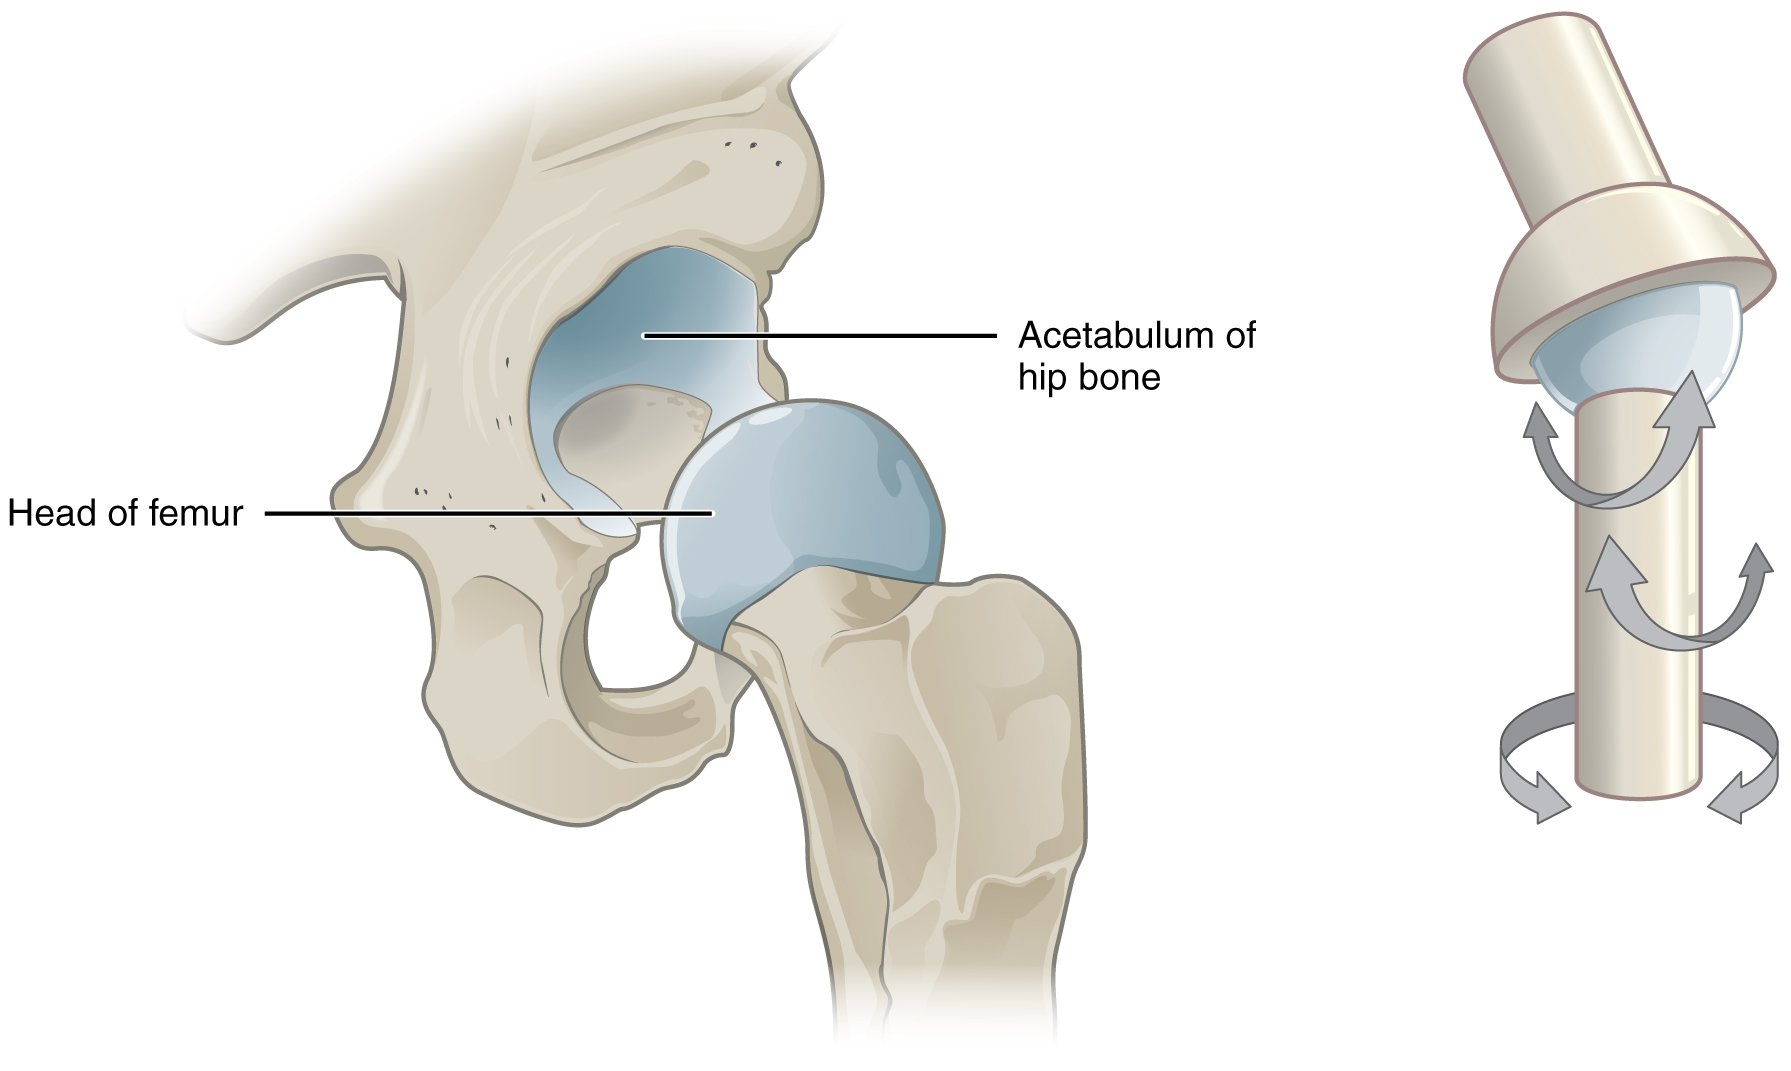 Synchondrosis Joint Location – Where the connecting medium is hyaline cartilage, a cartilaginous joint is termed a synchondrosis.